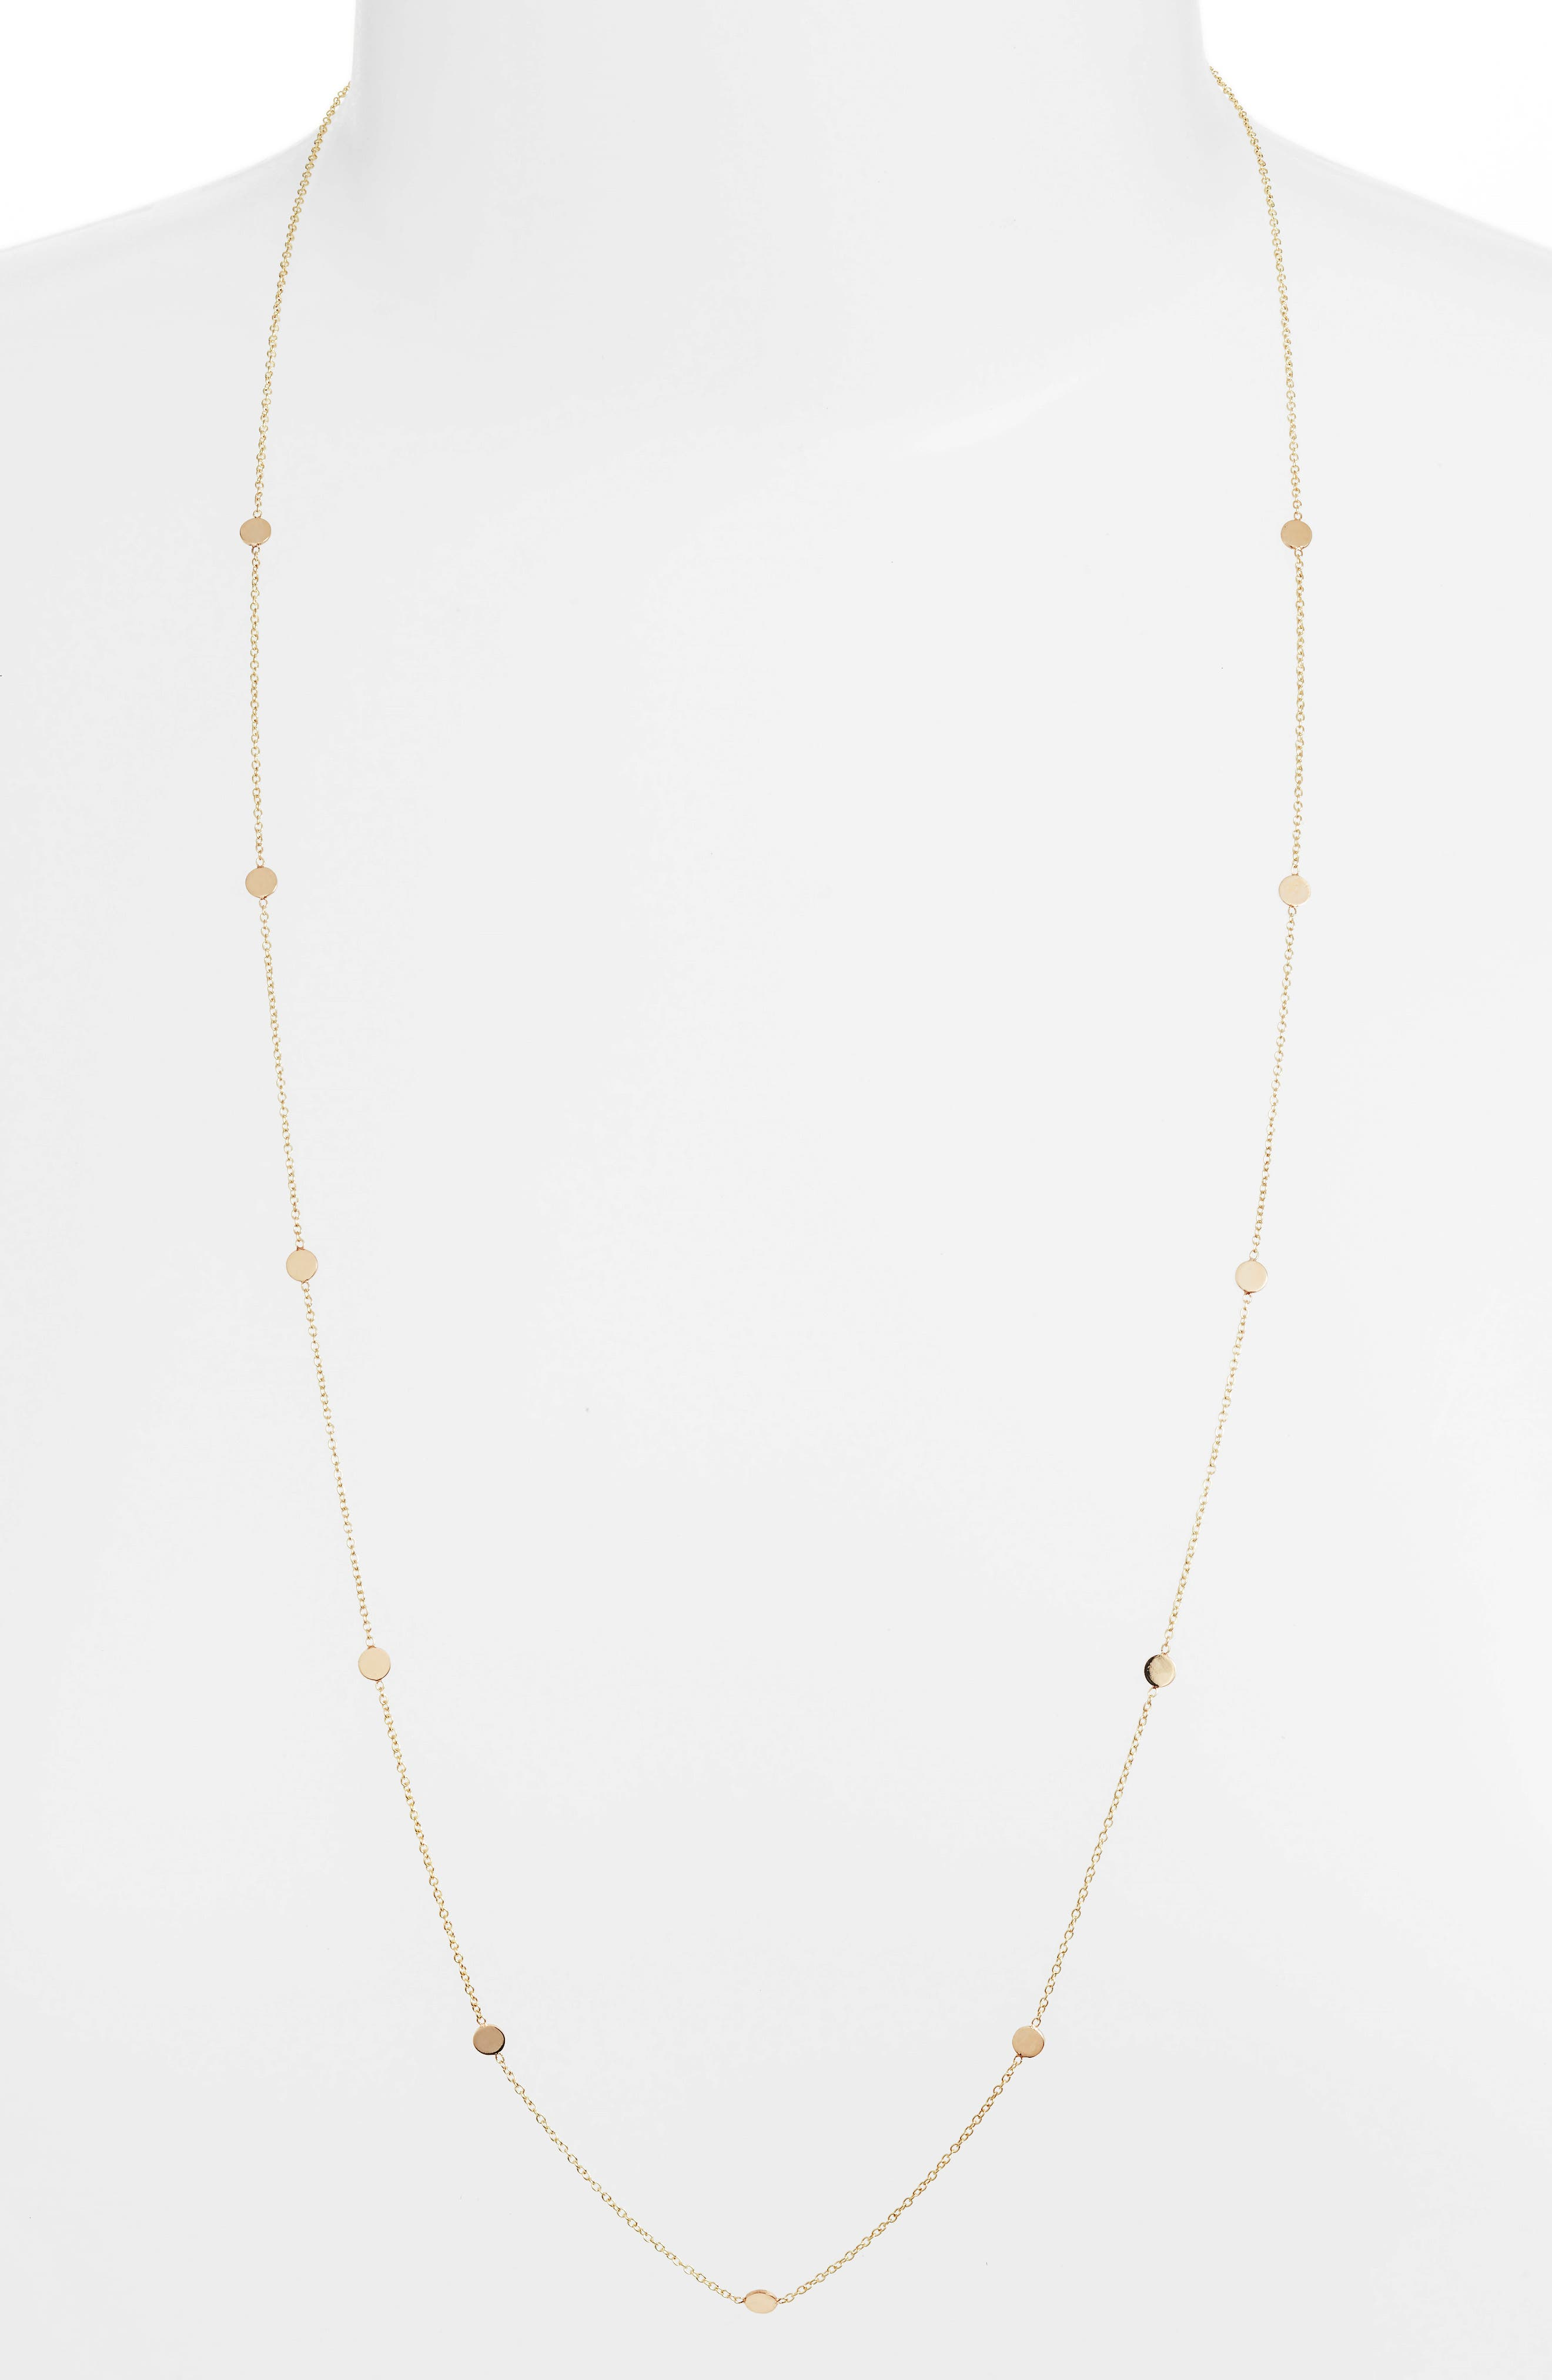 Zoe Chicco Itty Bitty Round Disc Station Necklace